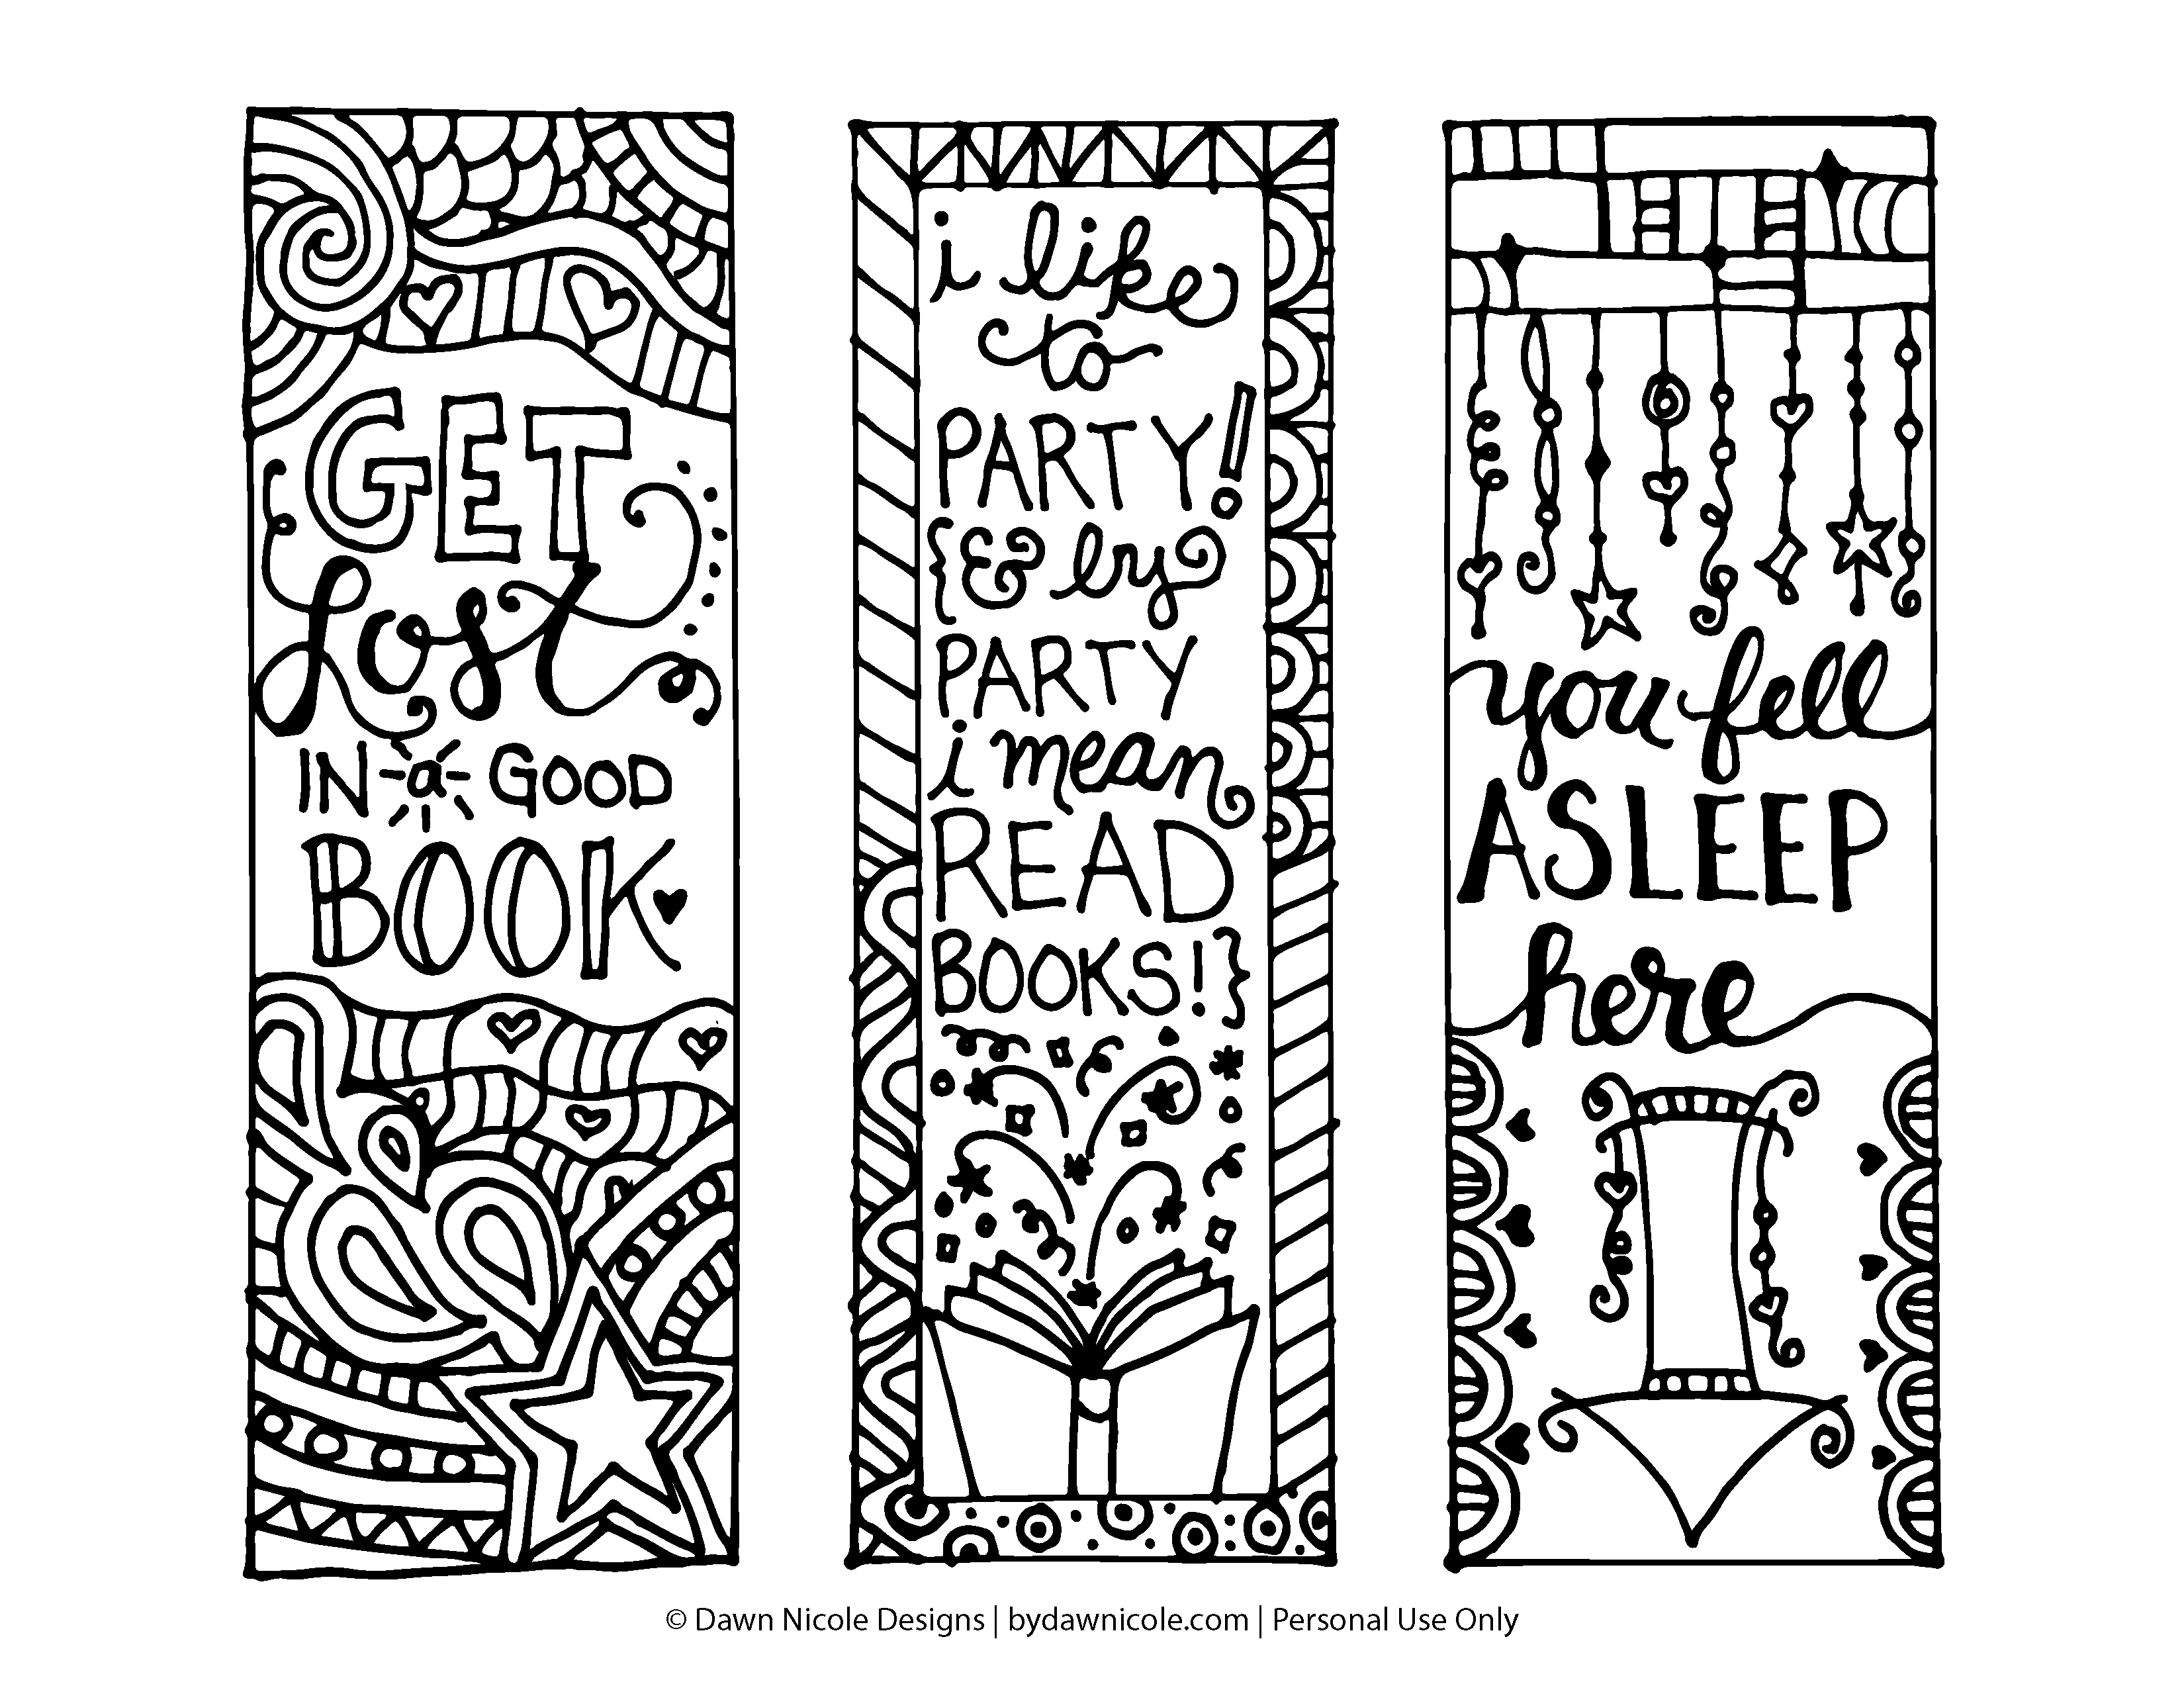 9 Best Images Of Printable Coloring Bookmarks Animal Bookmark Coloring Pages Printable Zentangle Bookmarks Patterns And Printable Bookmarks Coloring Pages Printablee Com